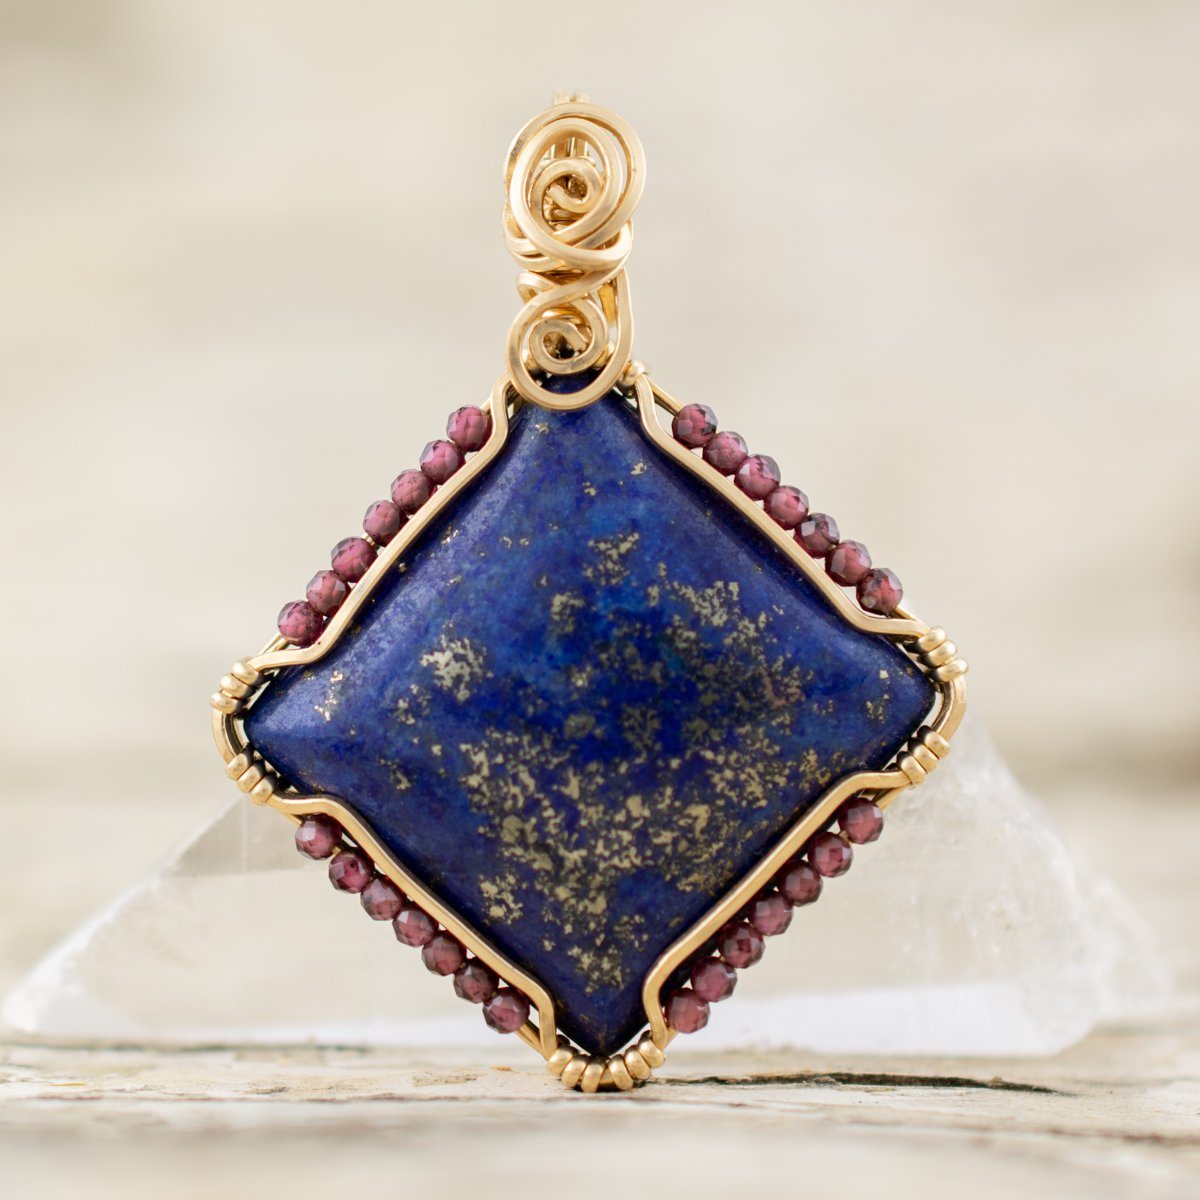 powerful protection amulet with Lapis and Garnet